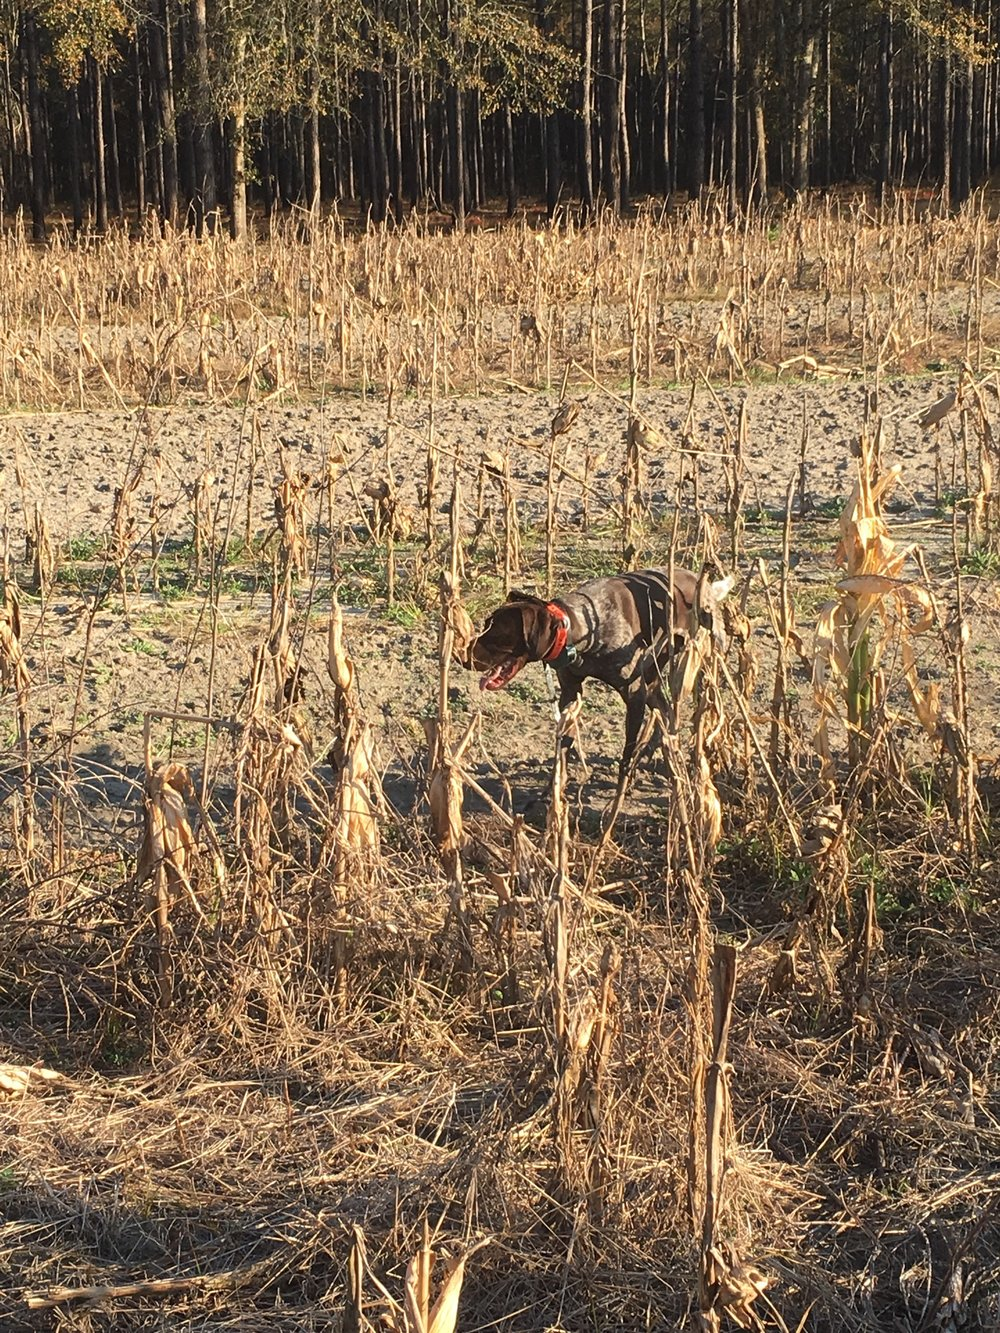 Maintained fields with corn planted for the quail.